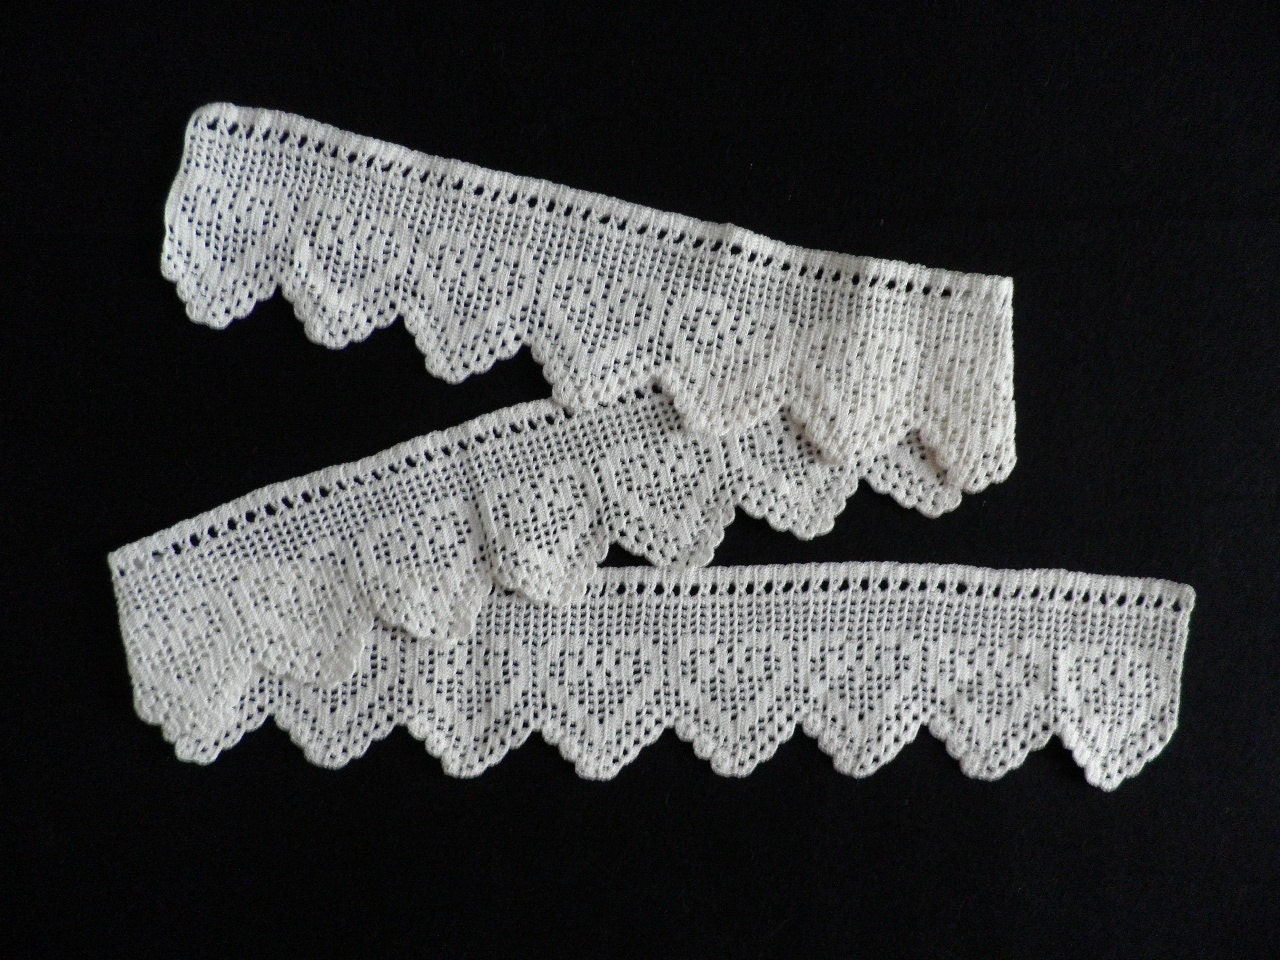 Crochet Lace Pattern For Edging : Crocheted Lace Edging Vintage White Heart Pattern by locolace